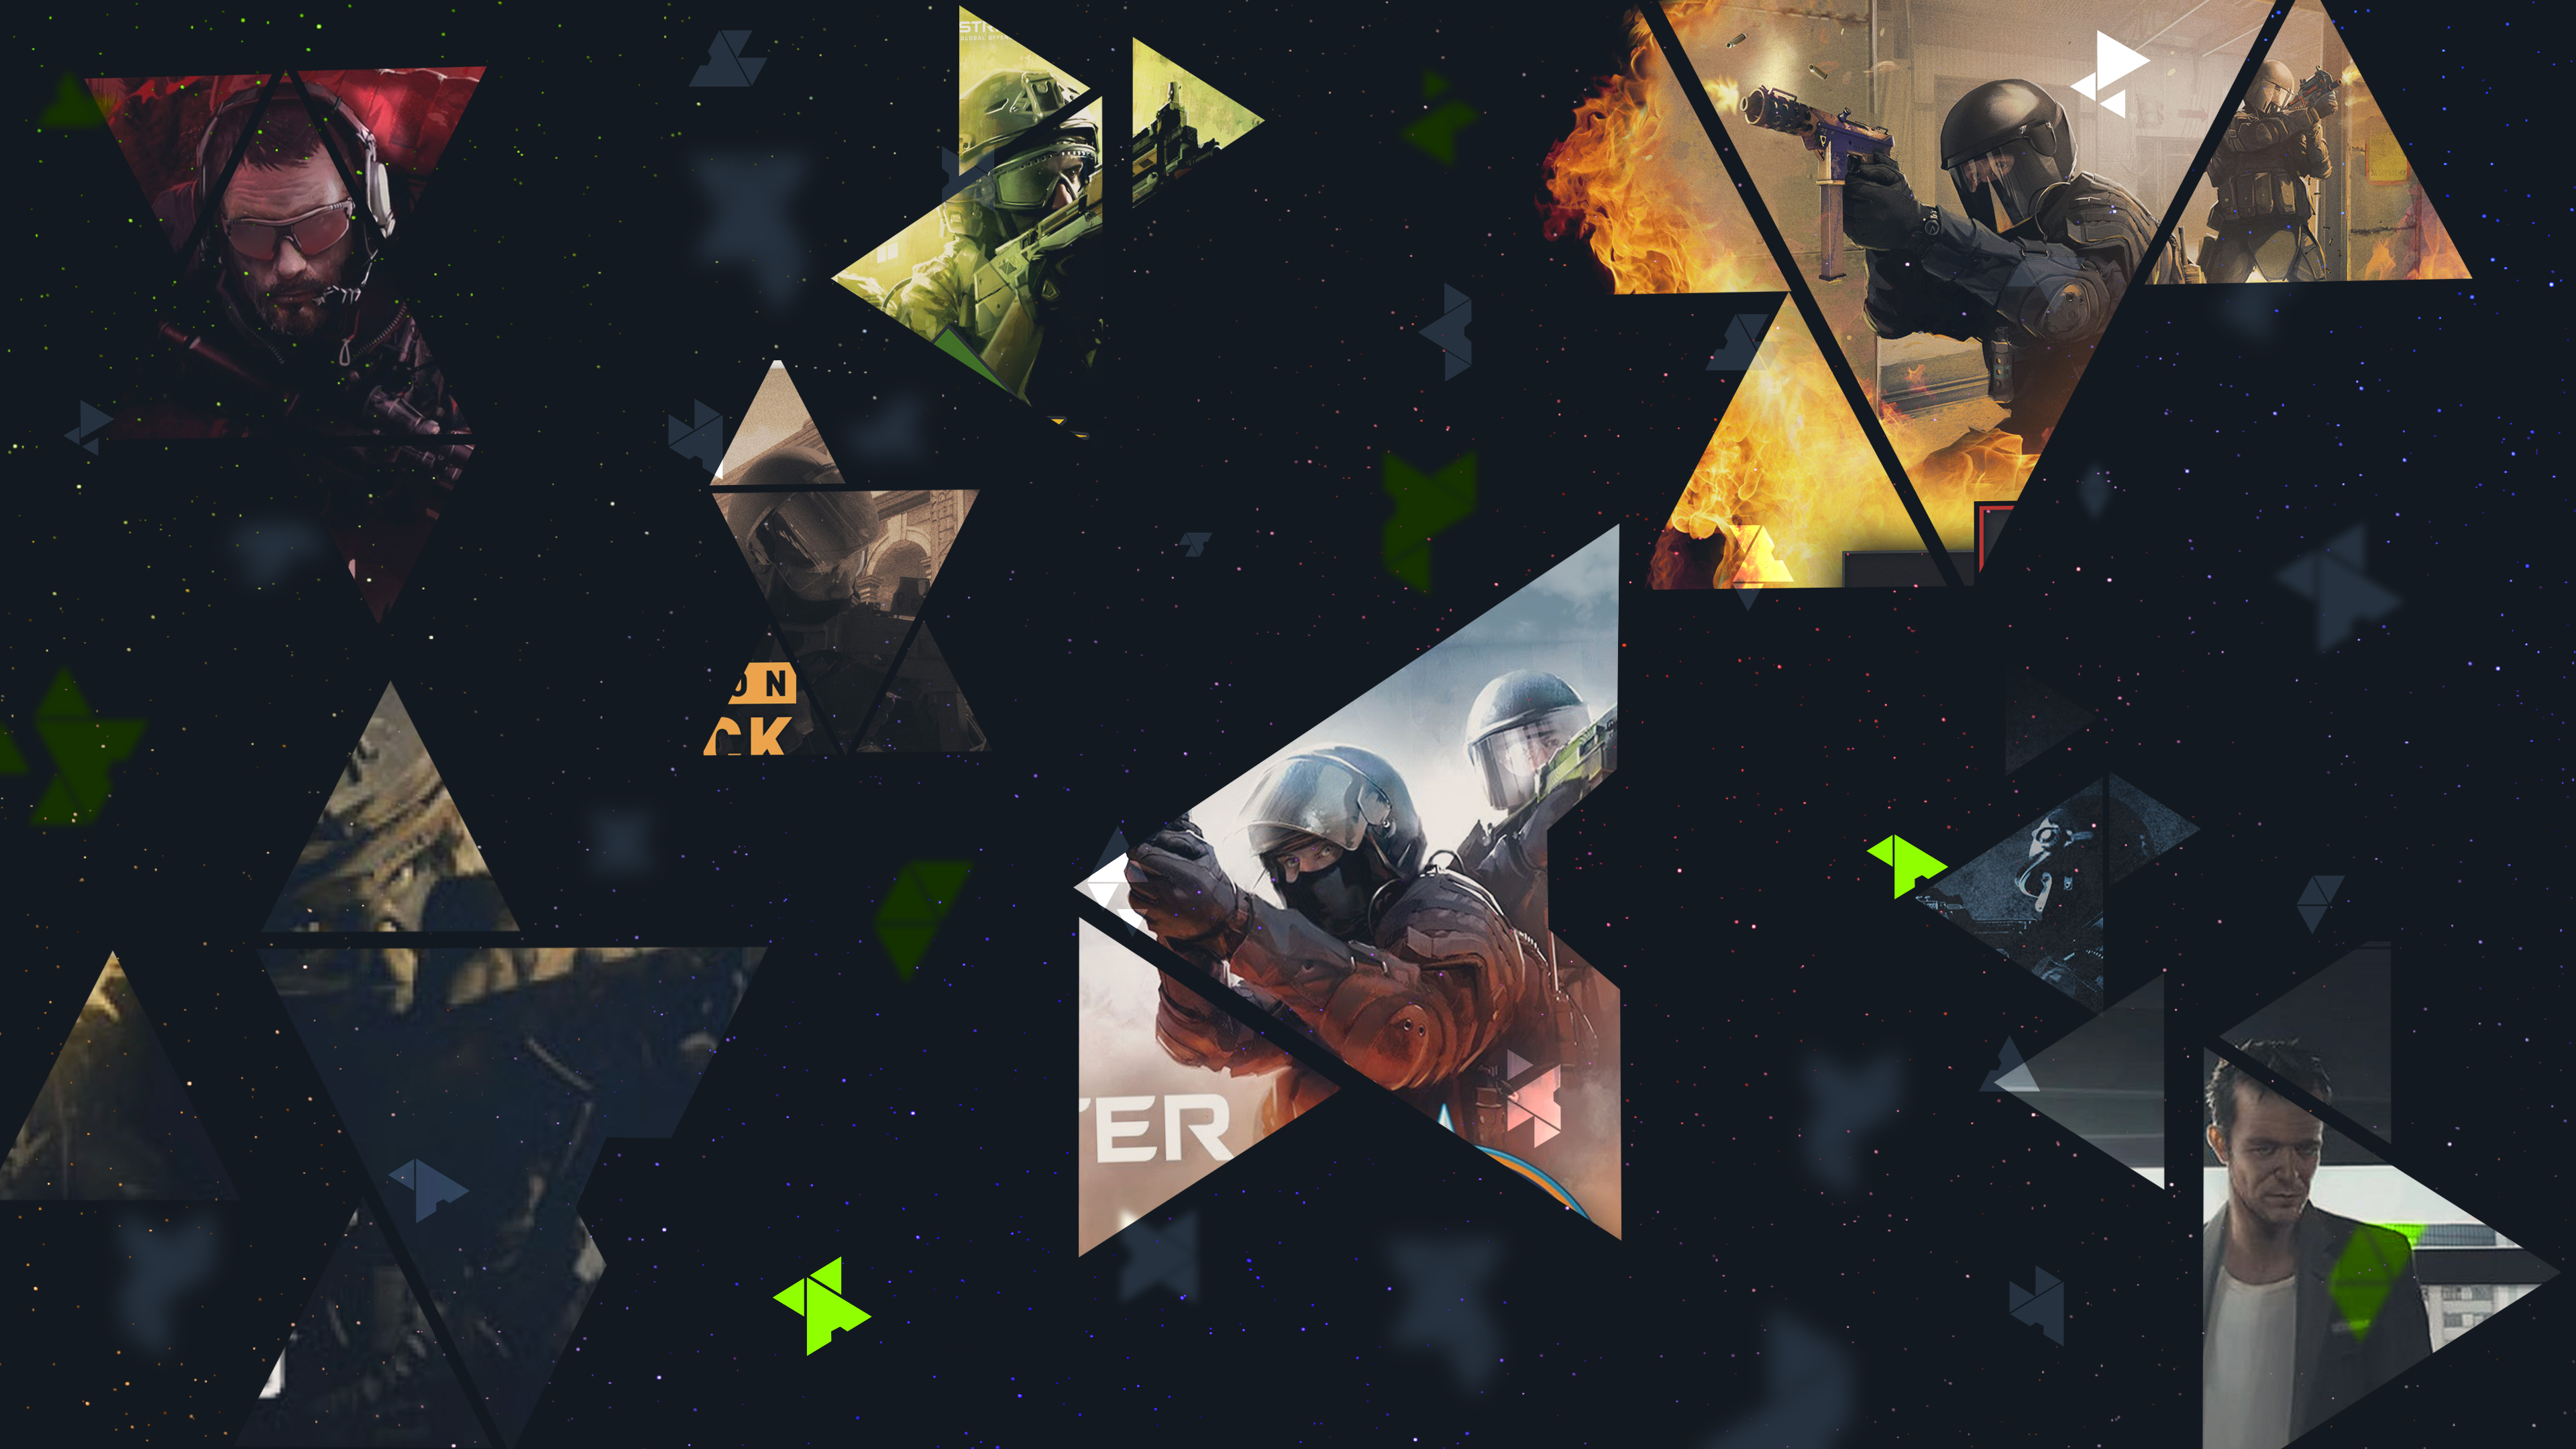 Cs Go Wallpaper On Inspirationde HD Wallpapers Download Free Images Wallpaper [1000image.com]